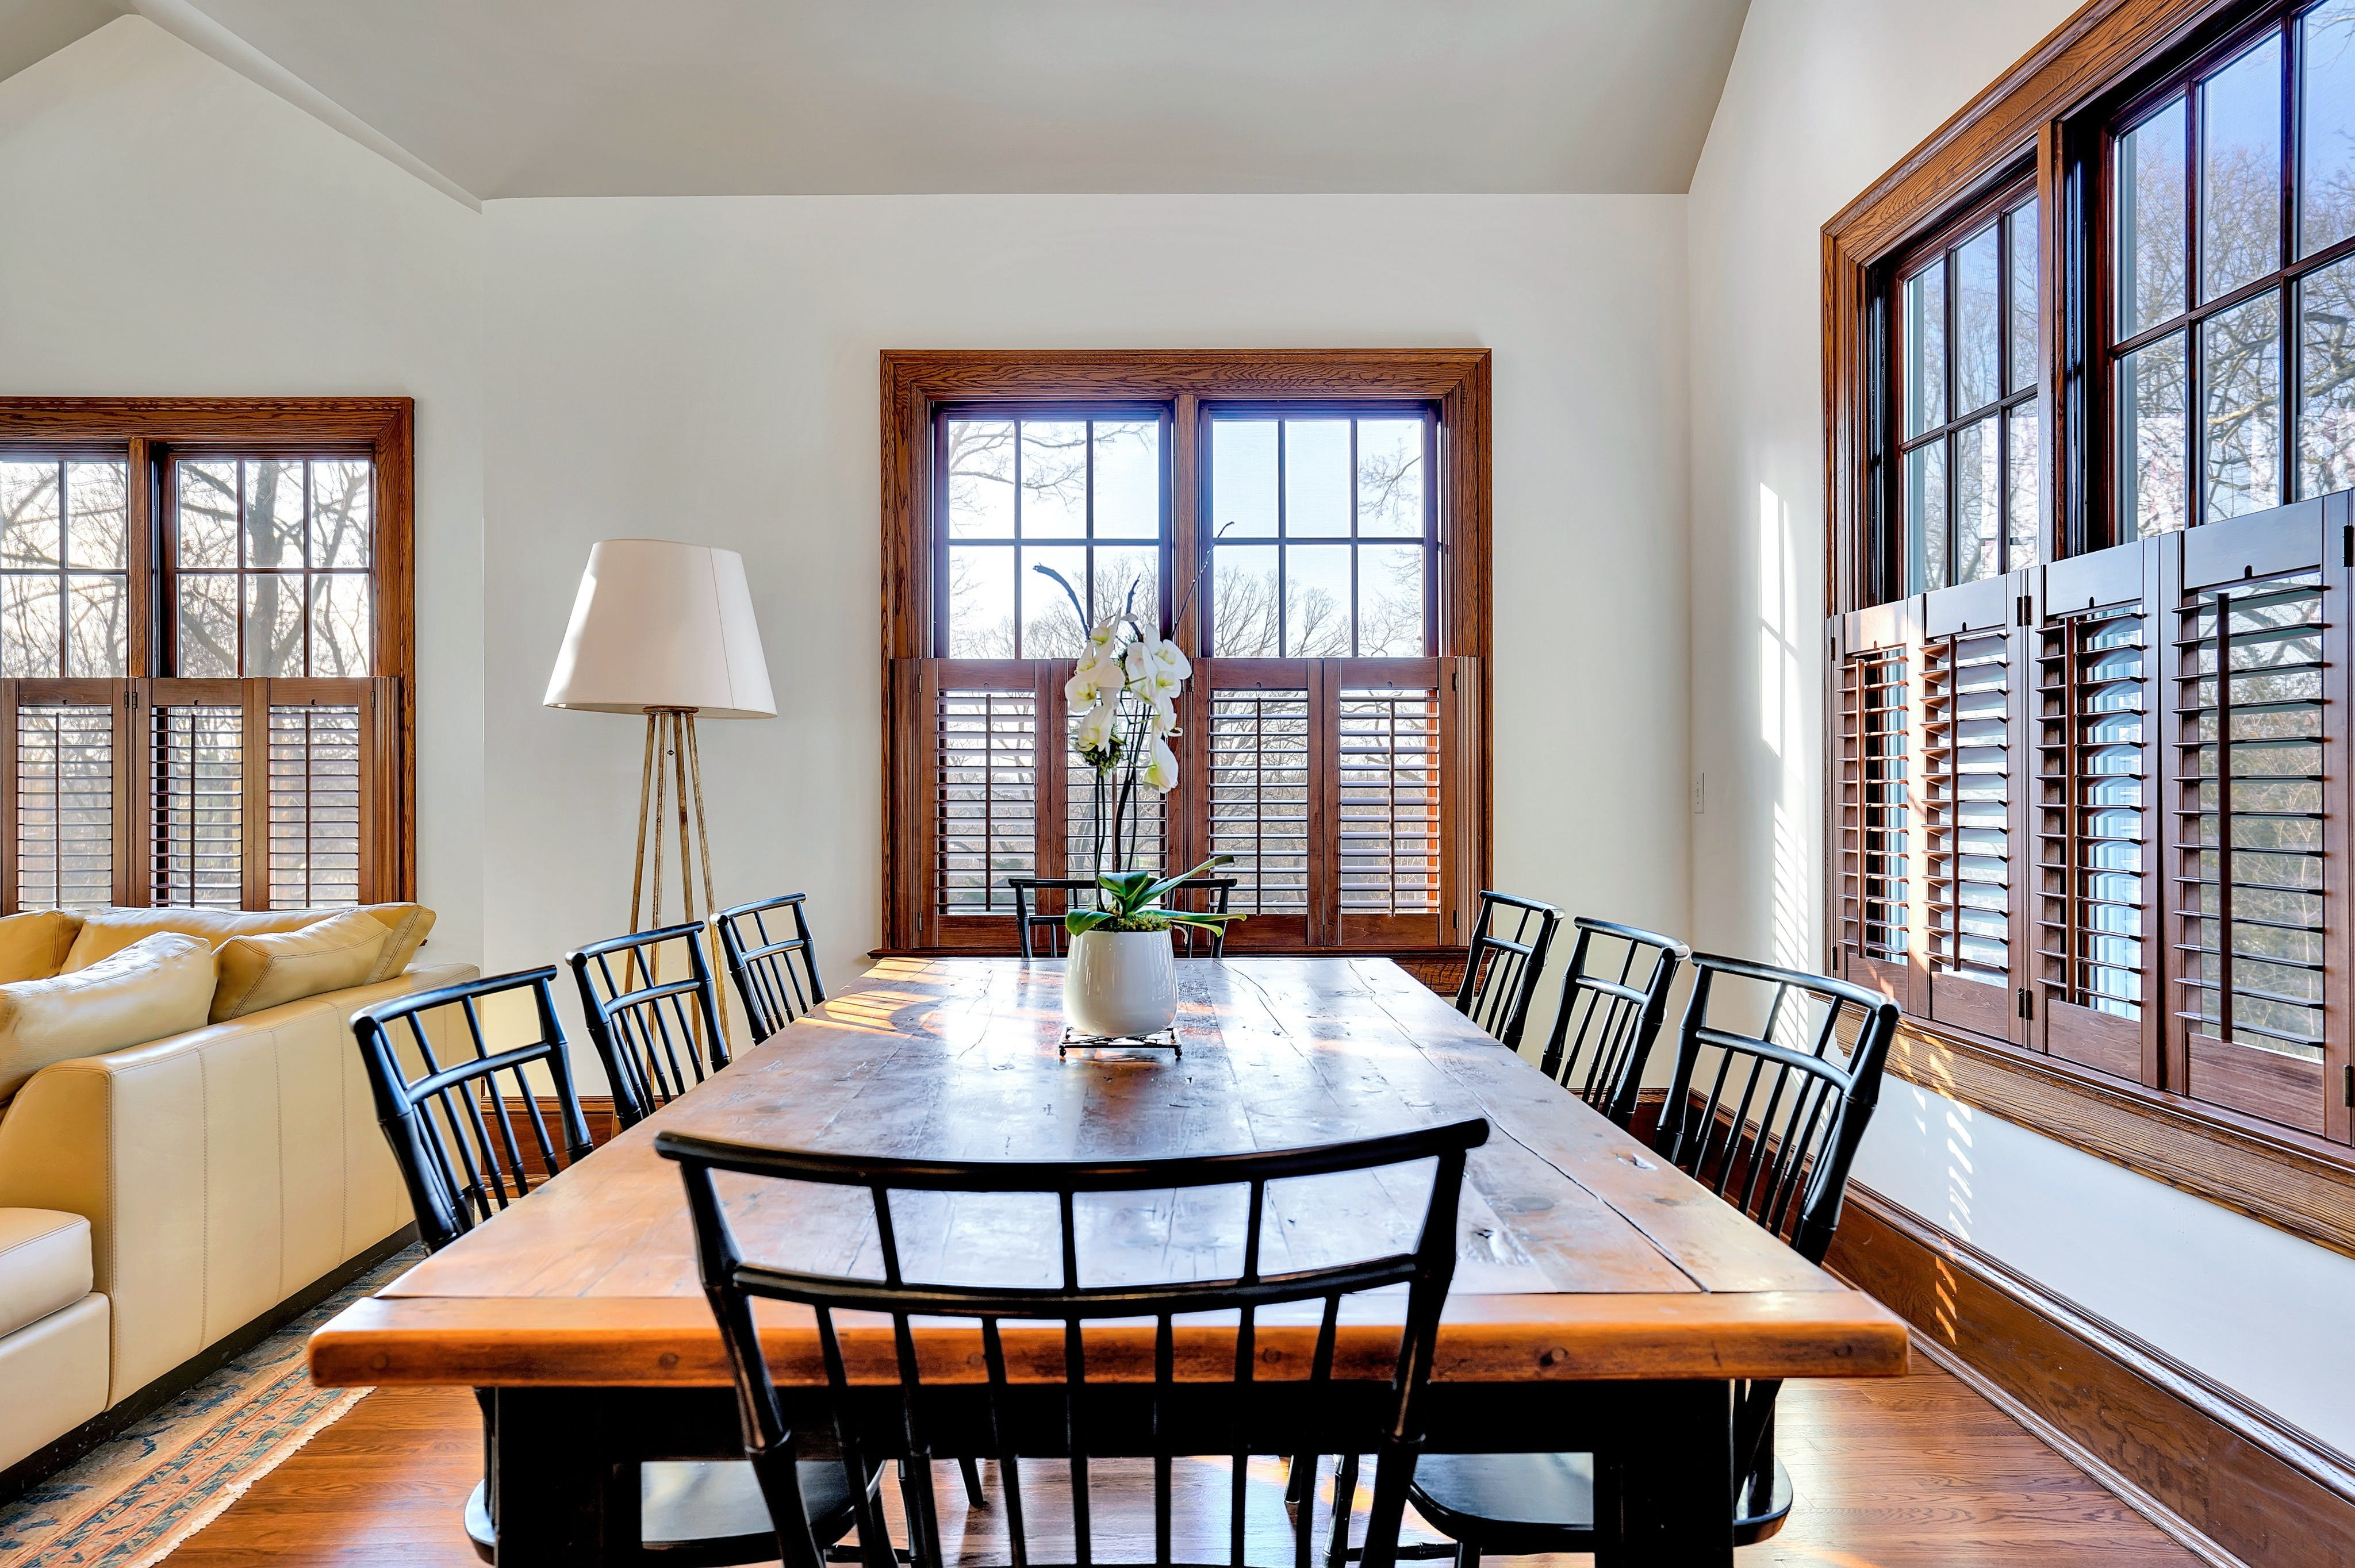 73 Oak Ridge Breakfast Room